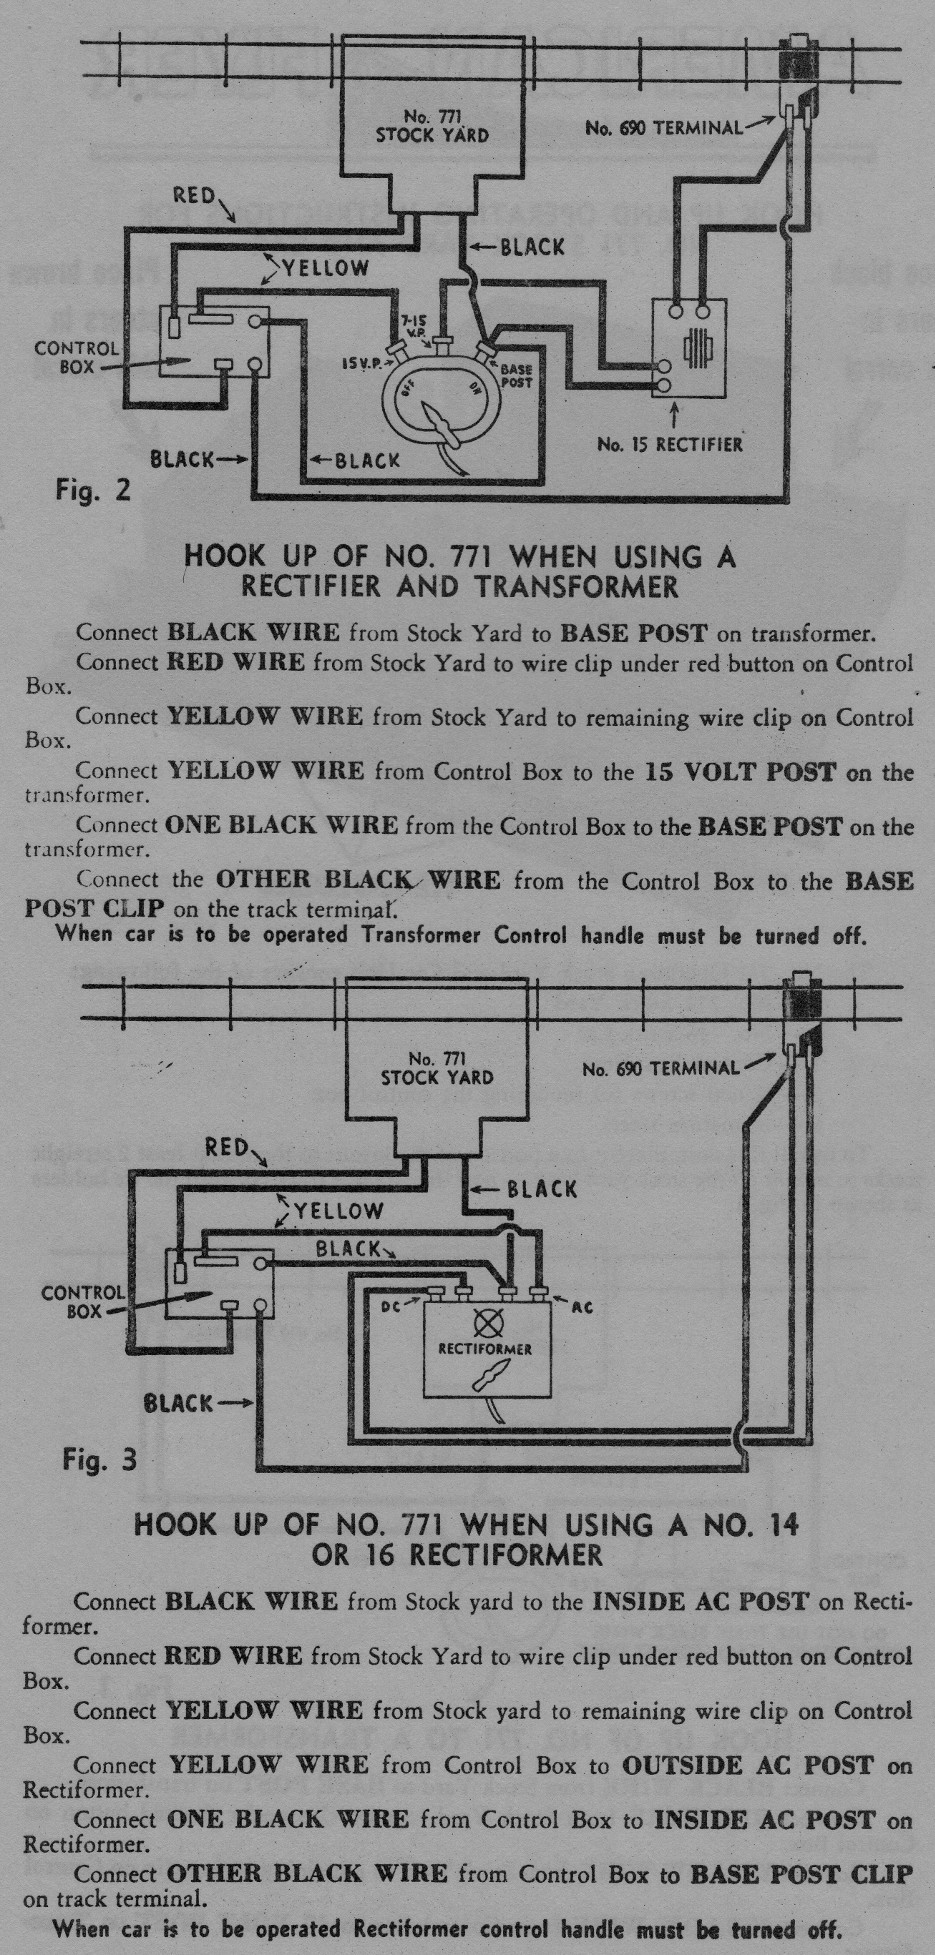 Hook Up and Operating Instructions for No. 771 Stock Yard & Car - Figure 2